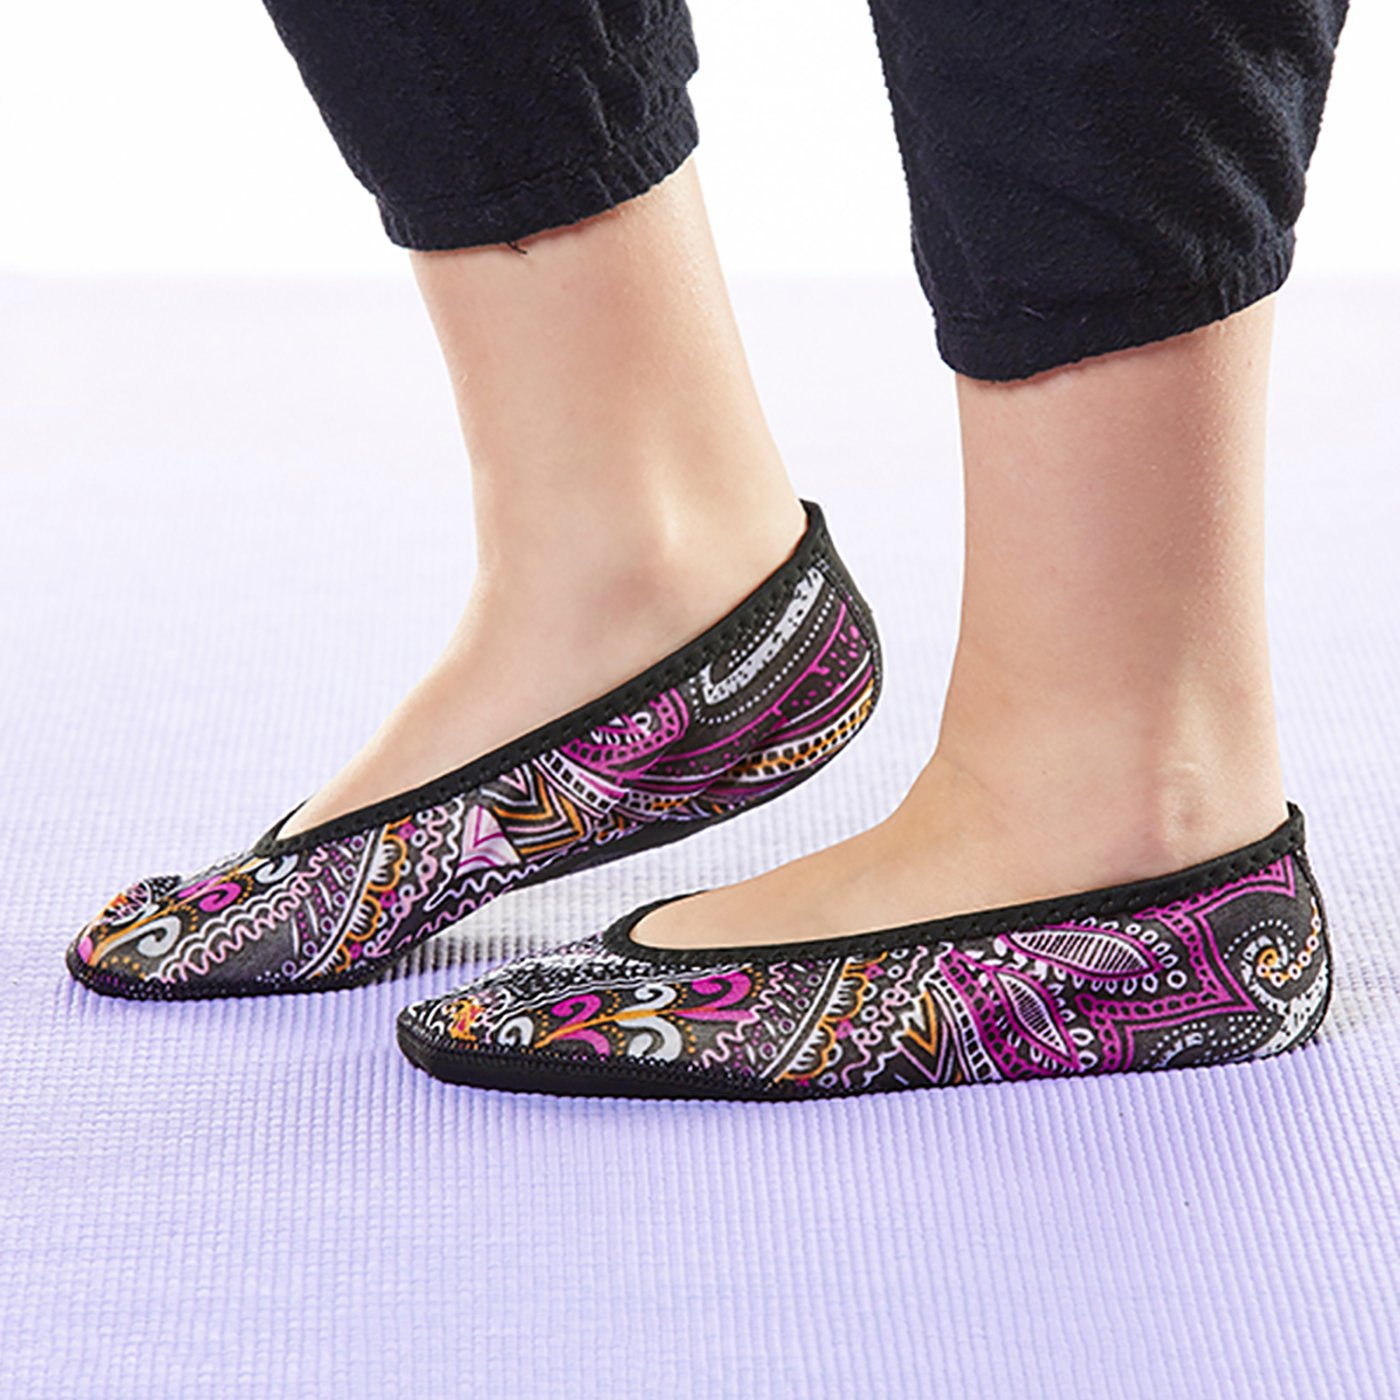 NuFoot Fuzzies Ballet Flats Women's Shoes, Best Foldable & Flexible Flats, Slipper Socks, Travel Slippers & Exercise Shoes, Dance Shoes, Yoga Socks, House Shoes, Indoor Slippers, Paisley, Large